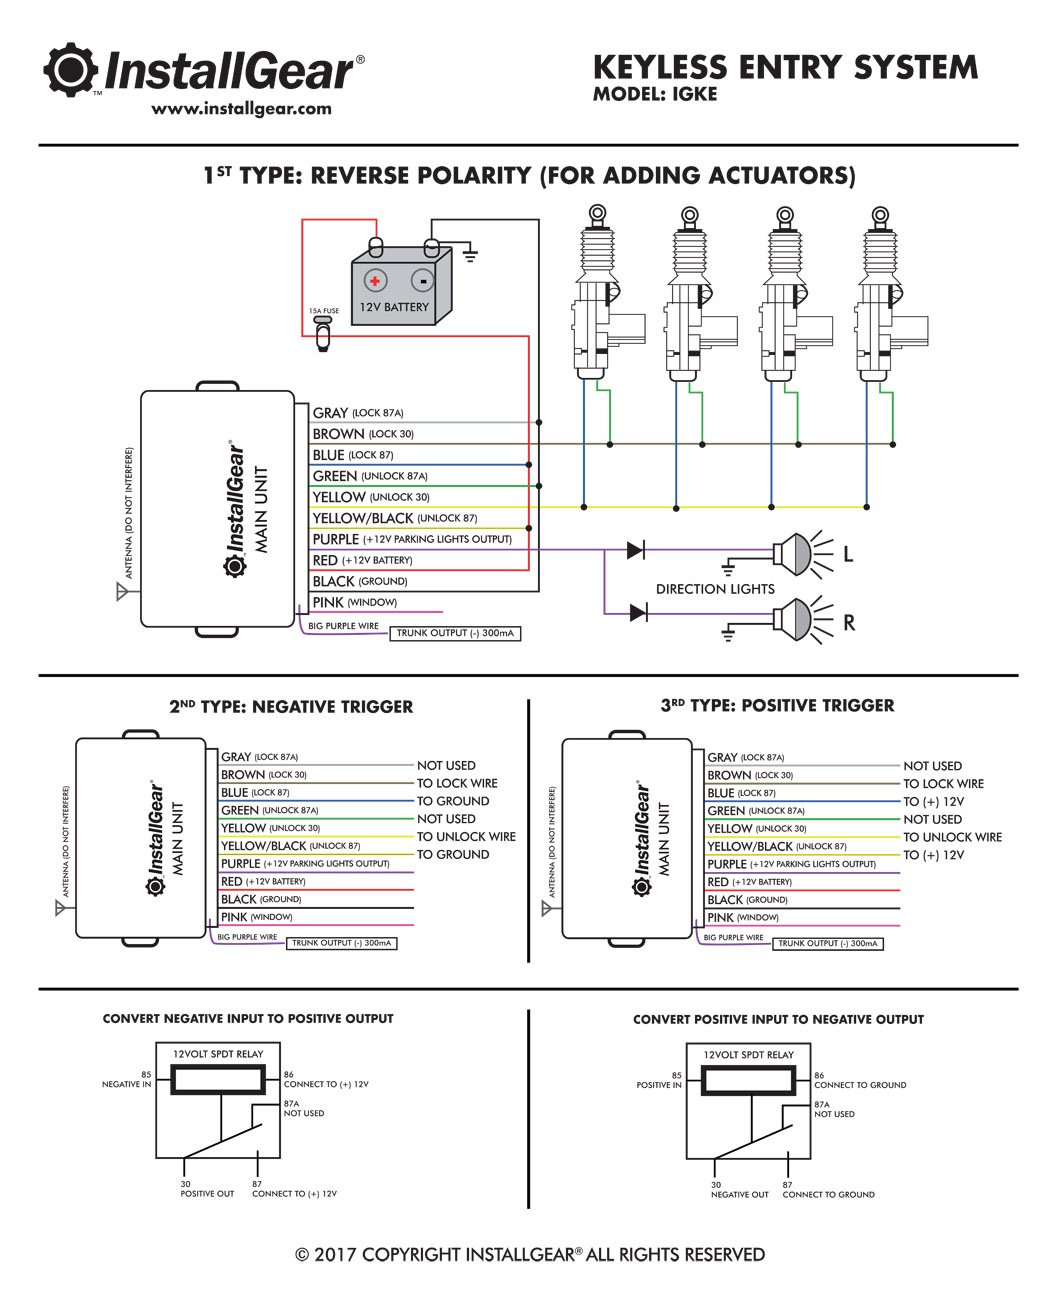 2003 Dodge Ram Remote Keyles Entry Wiring Diagram